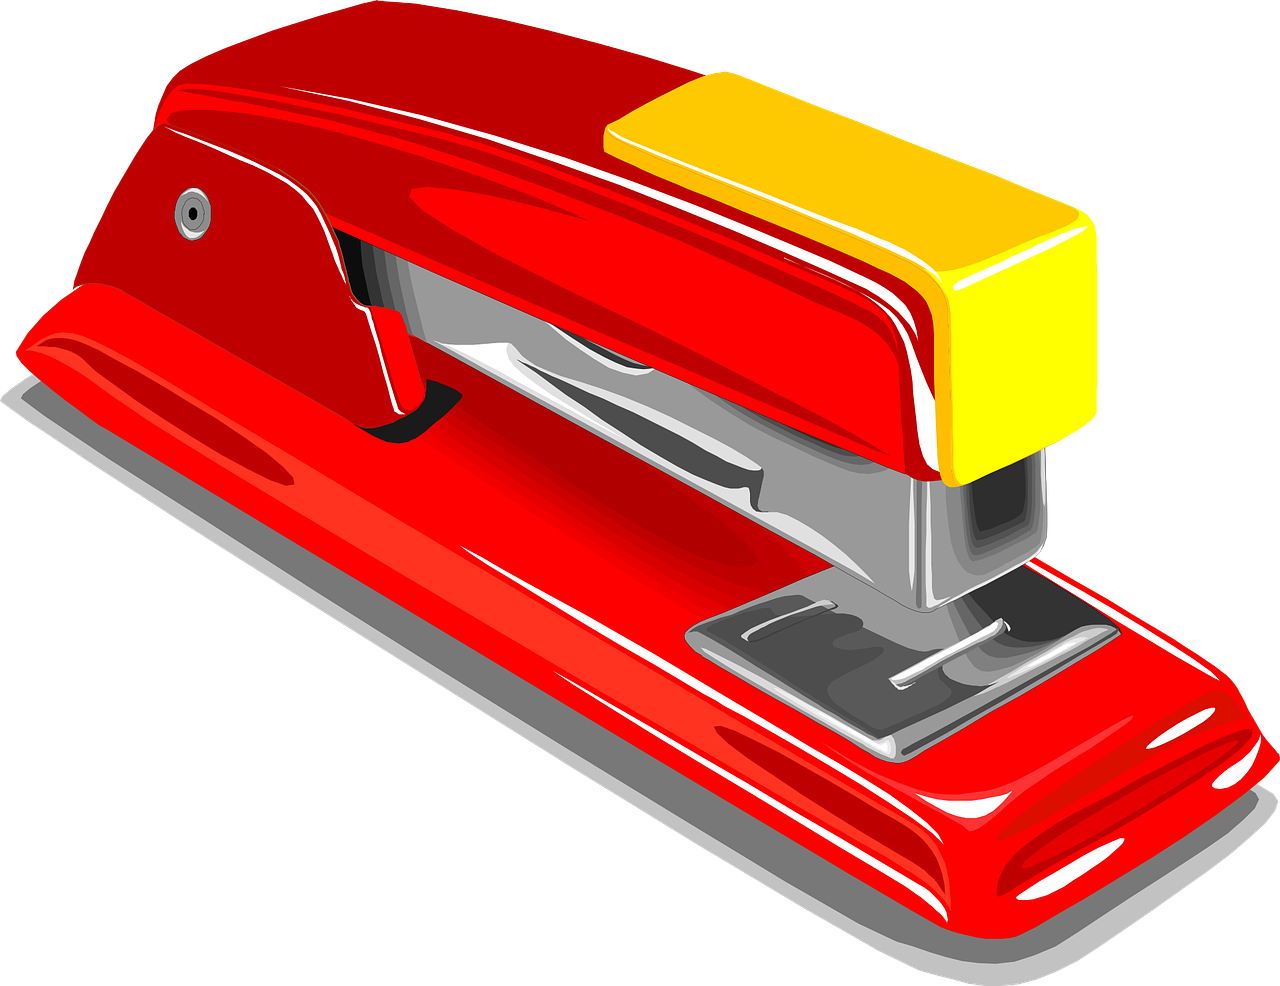 Free Image on Pixabay Stapler, Staple, Stapling, Red